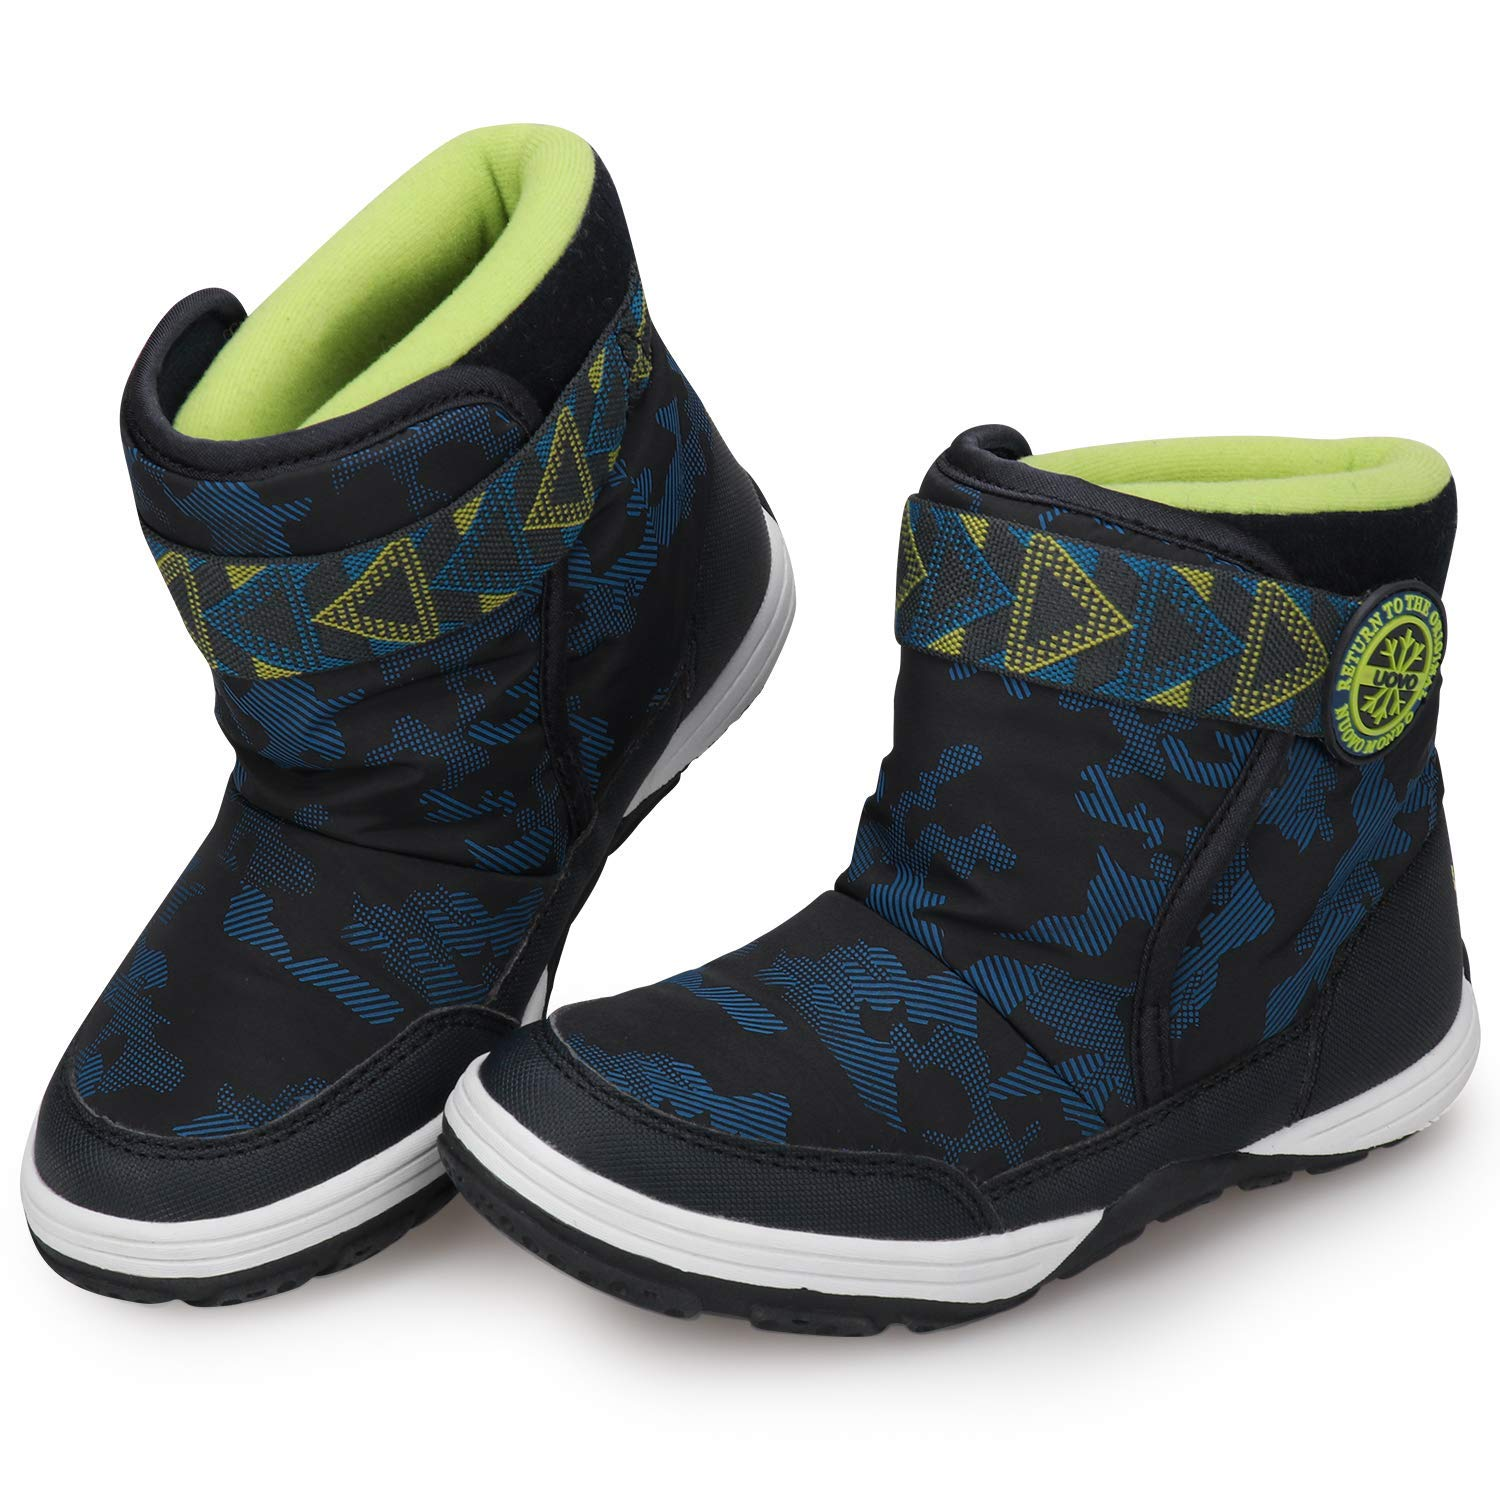 ba303cf9b311 Get Quotations · UOVO Winter Boots for Boys Kids Snow Boots Waterproof Winter  Shoes for Cold Weather Slip Resistant